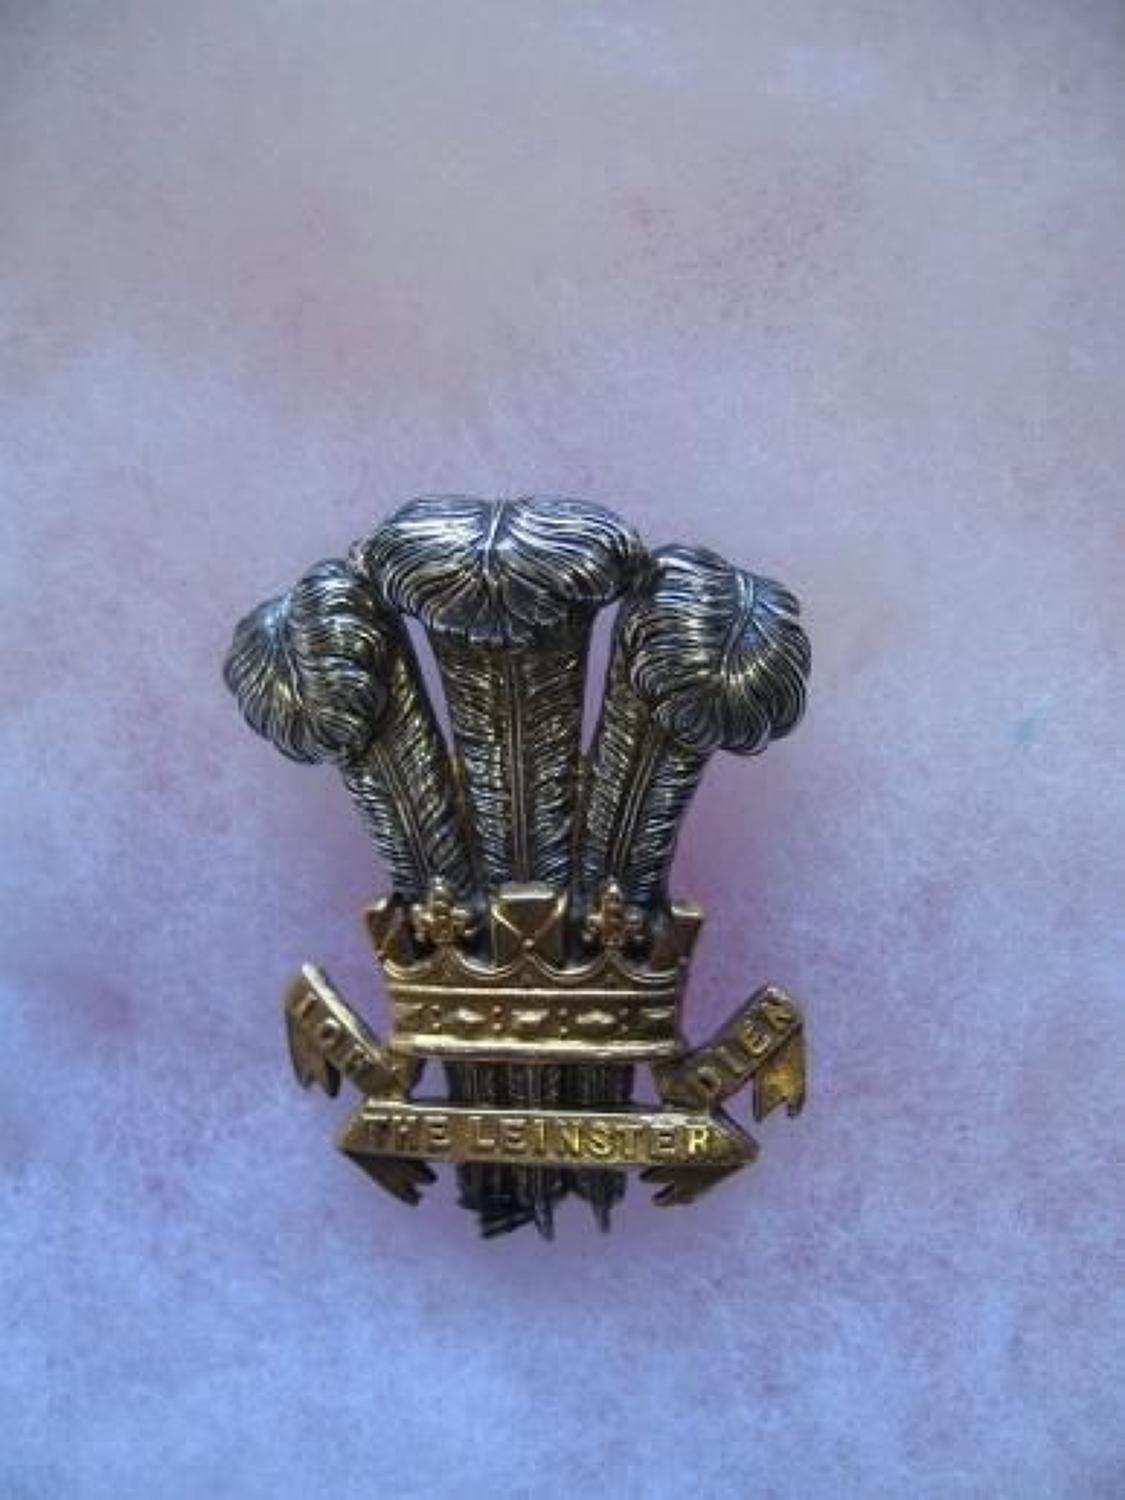 THE LEINSTER REGIMENT, OFFICERS PRE 1900, FORAGE CAP INSIGNIA.